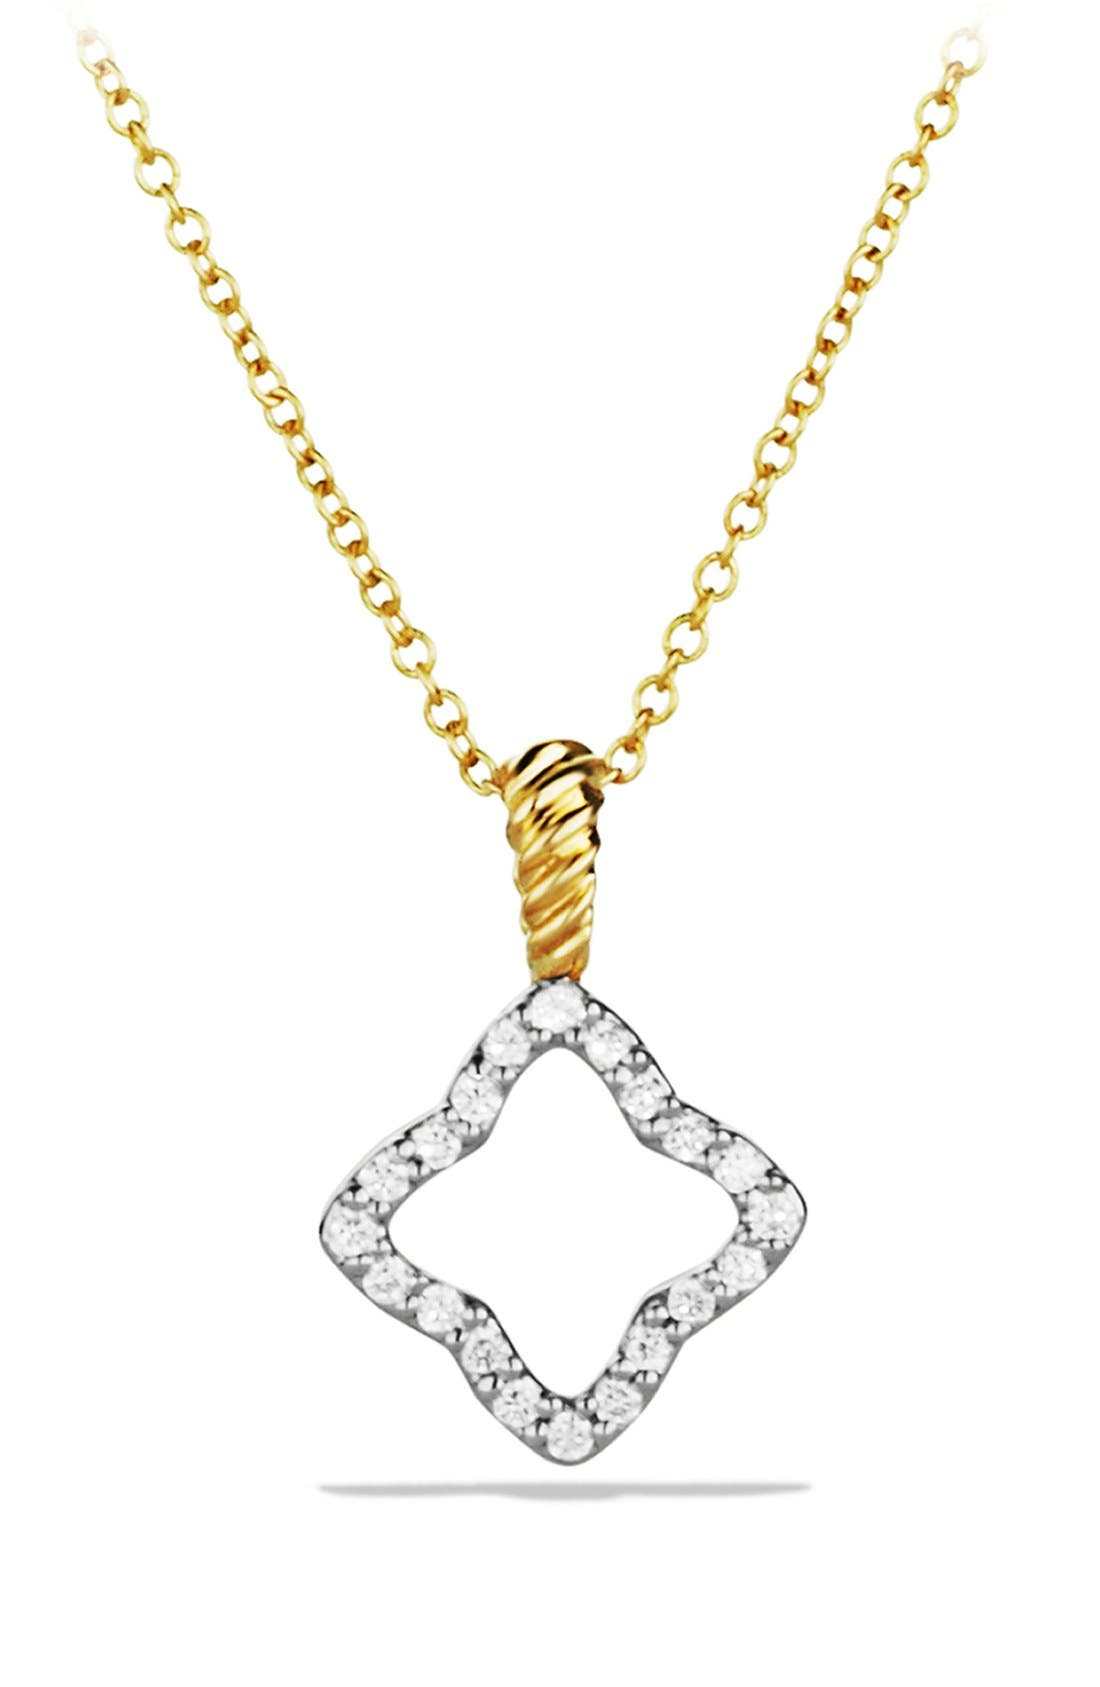 'Cable Collectibles' Quatrefoil Pendant with Diamonds in Gold on Chain,                             Main thumbnail 1, color,                             DIAMOND